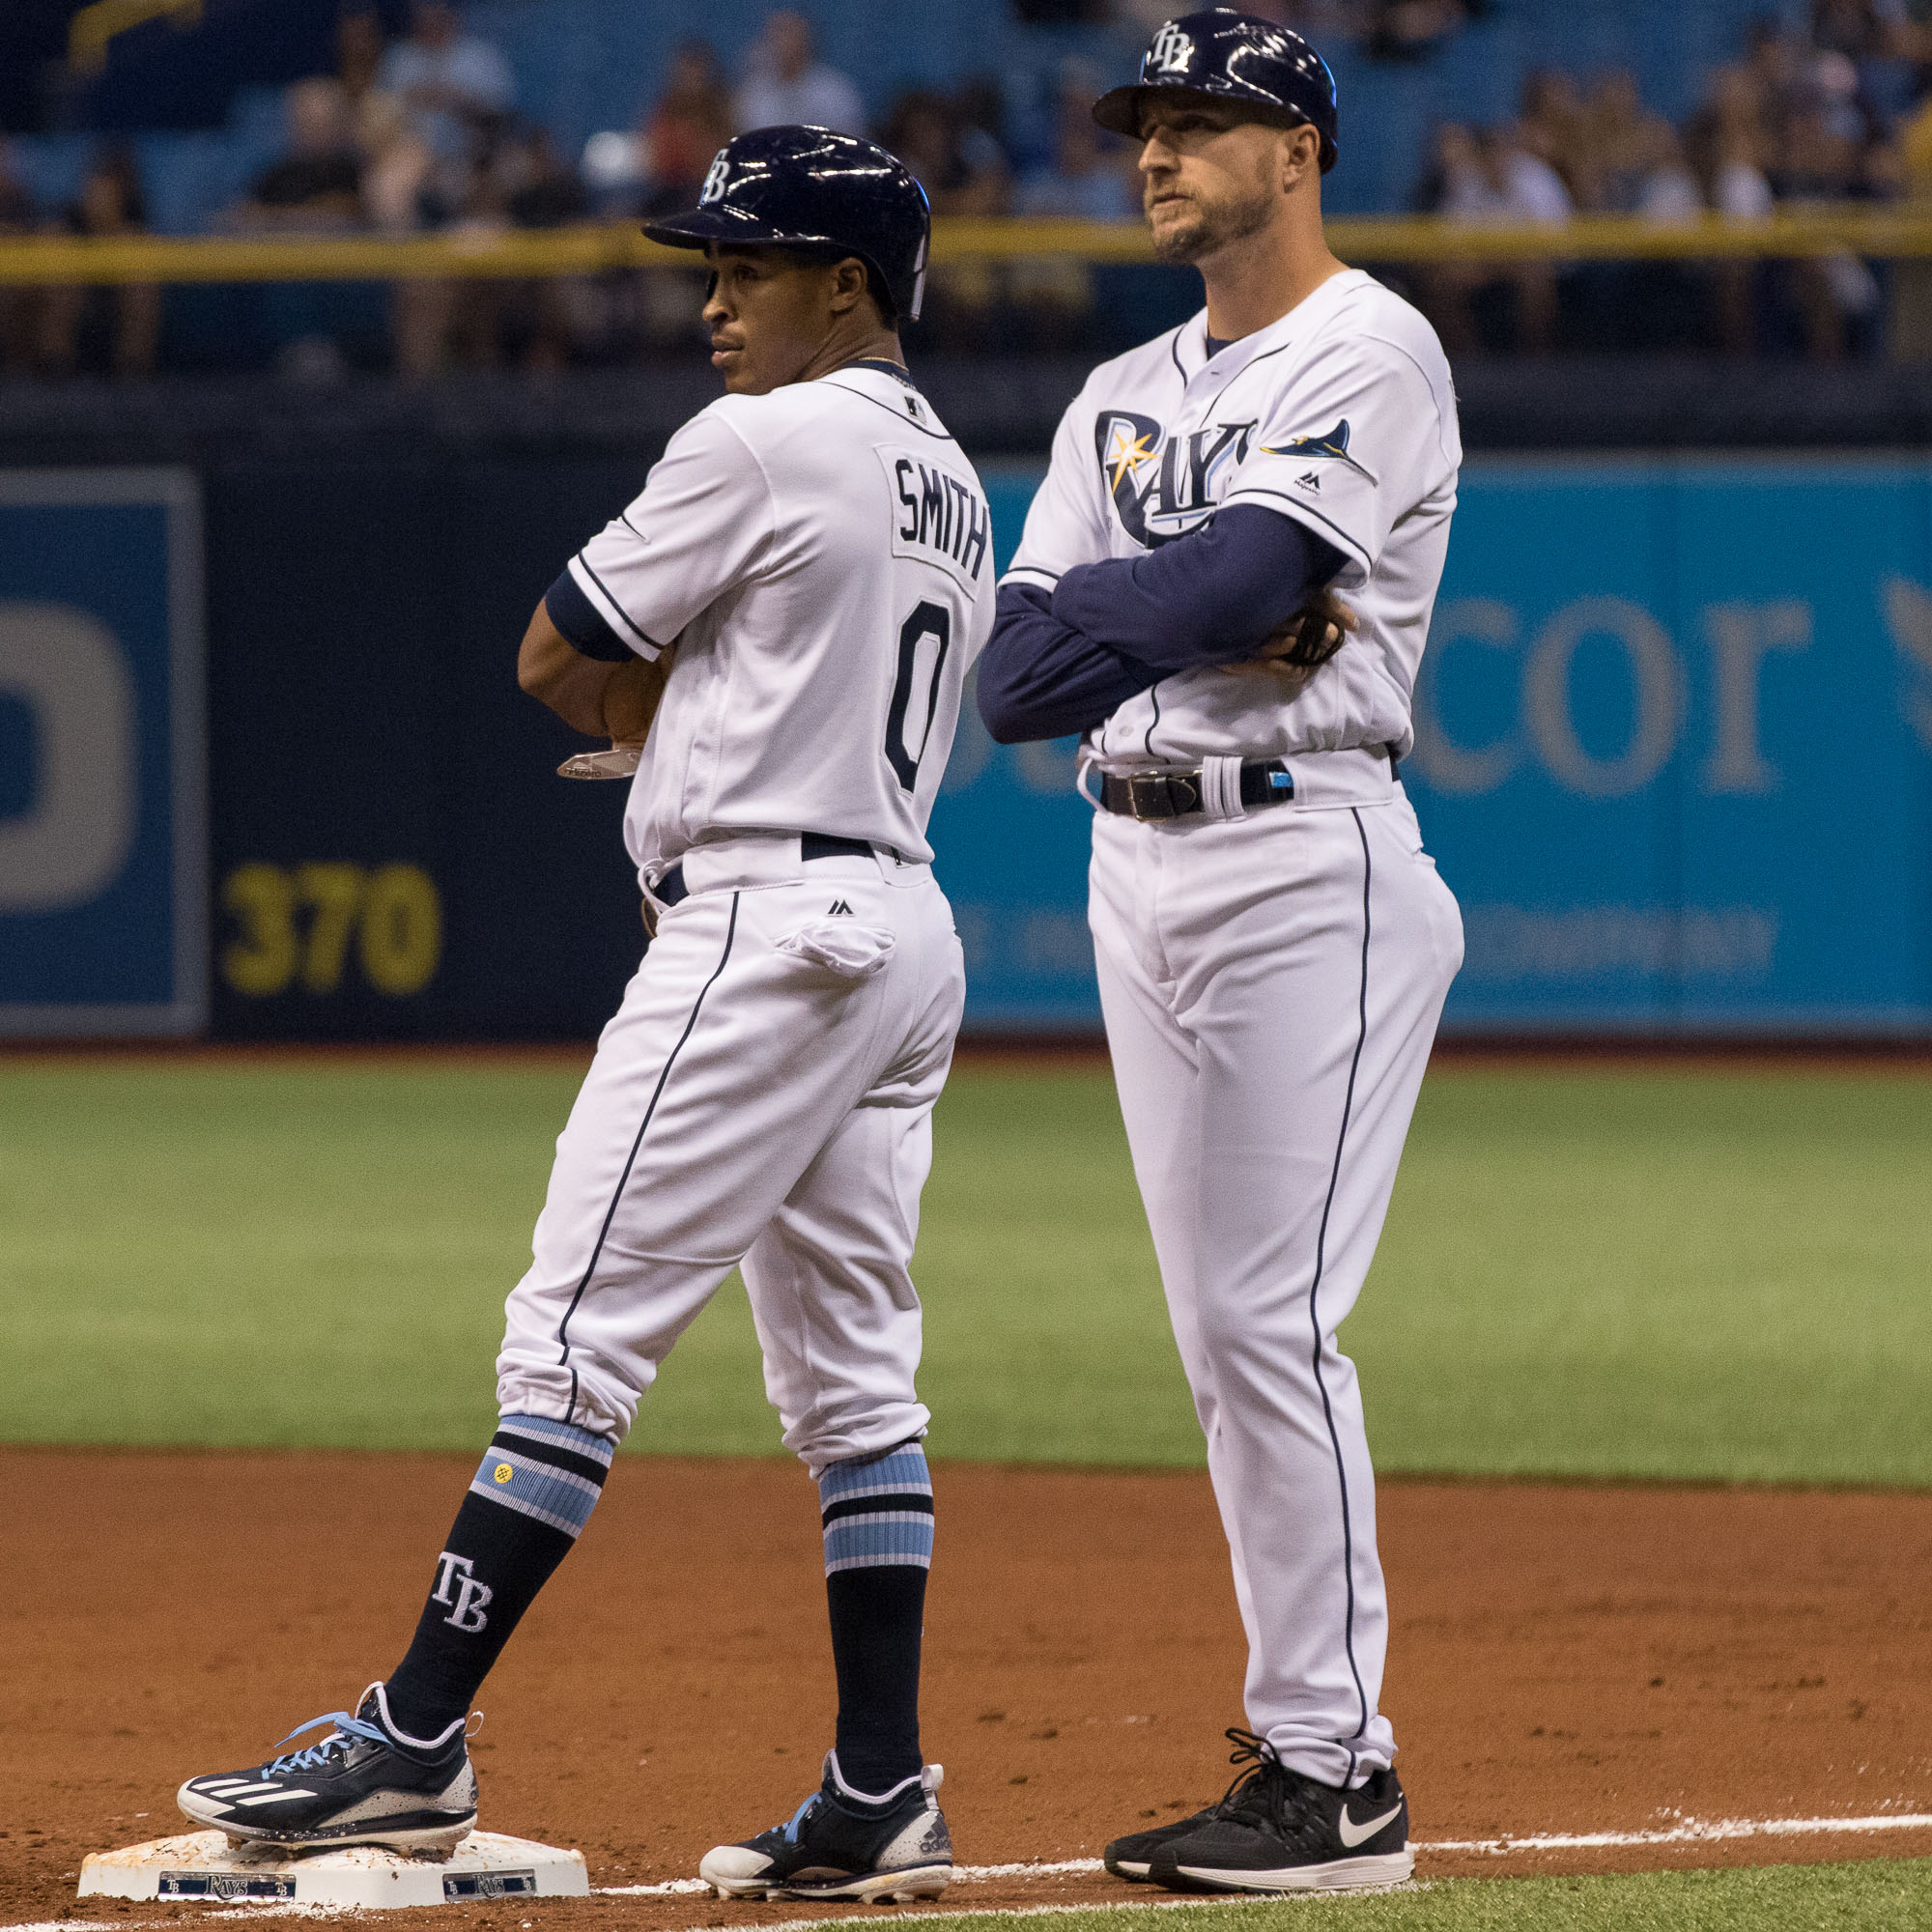 Mallex Smith's legs have made him a welcome addition to the Rays./STEVEN MUNCIE